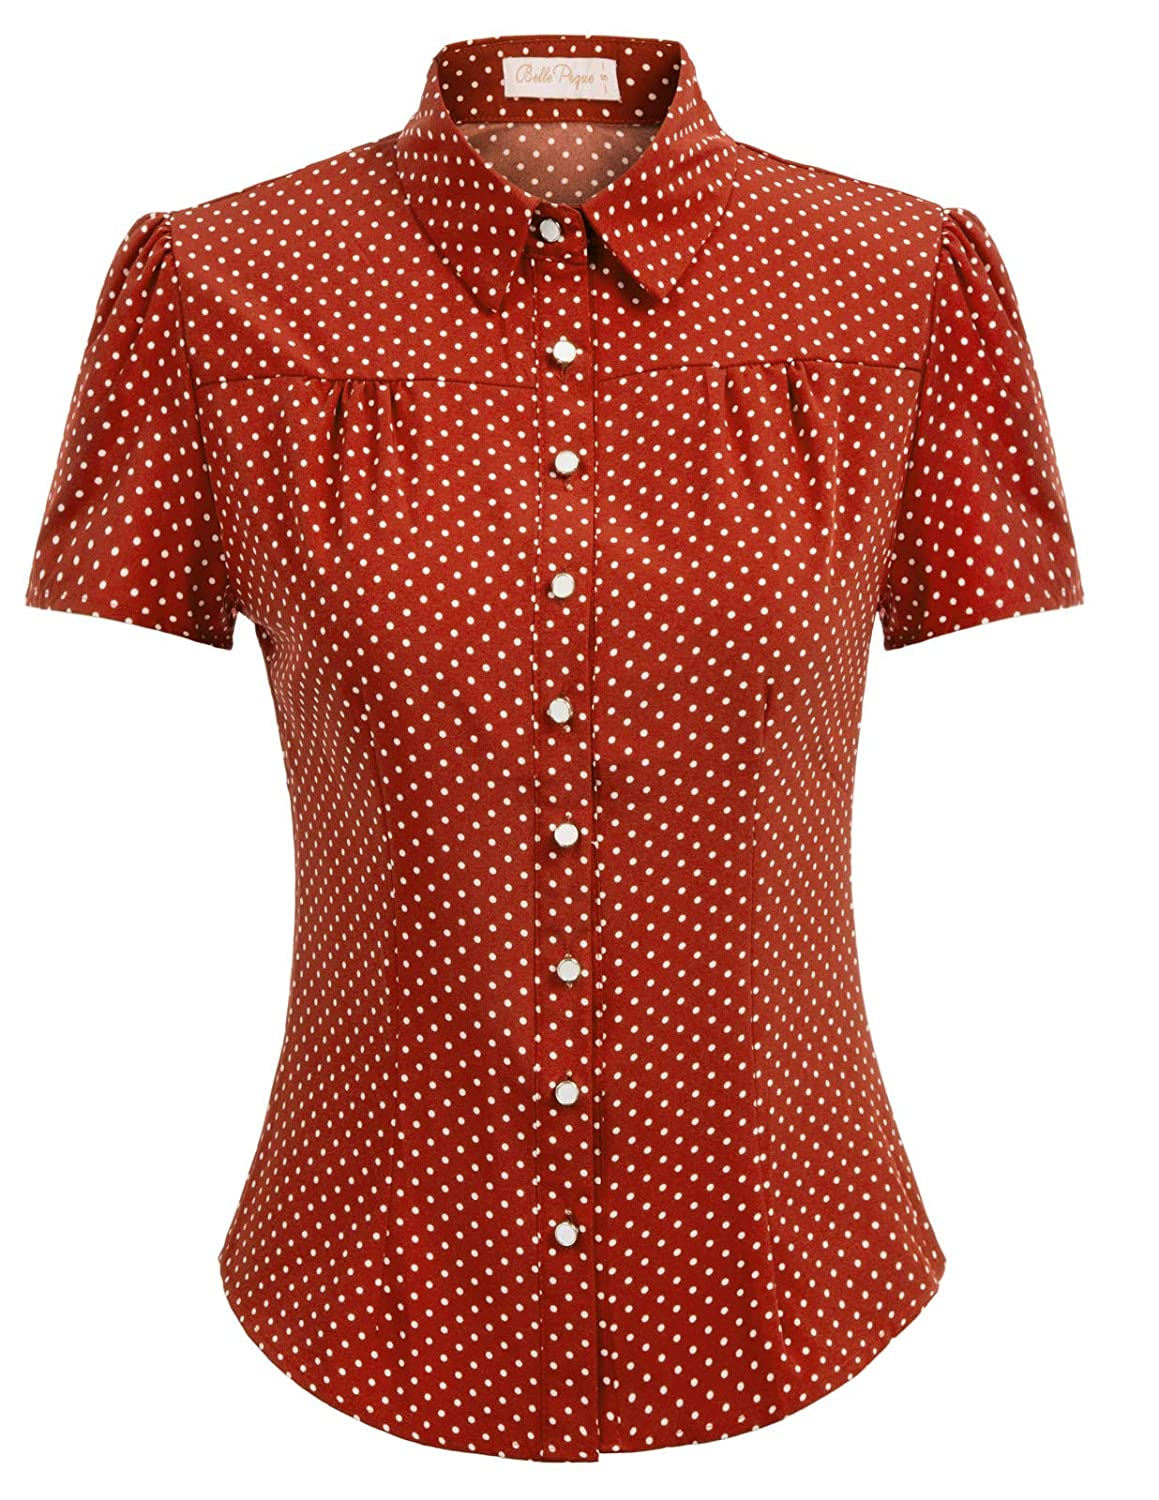 1940s Blouses and Tops Belle Poque Womens Polka Dot Shirt Tops 1950s Retro Short Sleeve Blouse Tops $19.99 AT vintagedancer.com